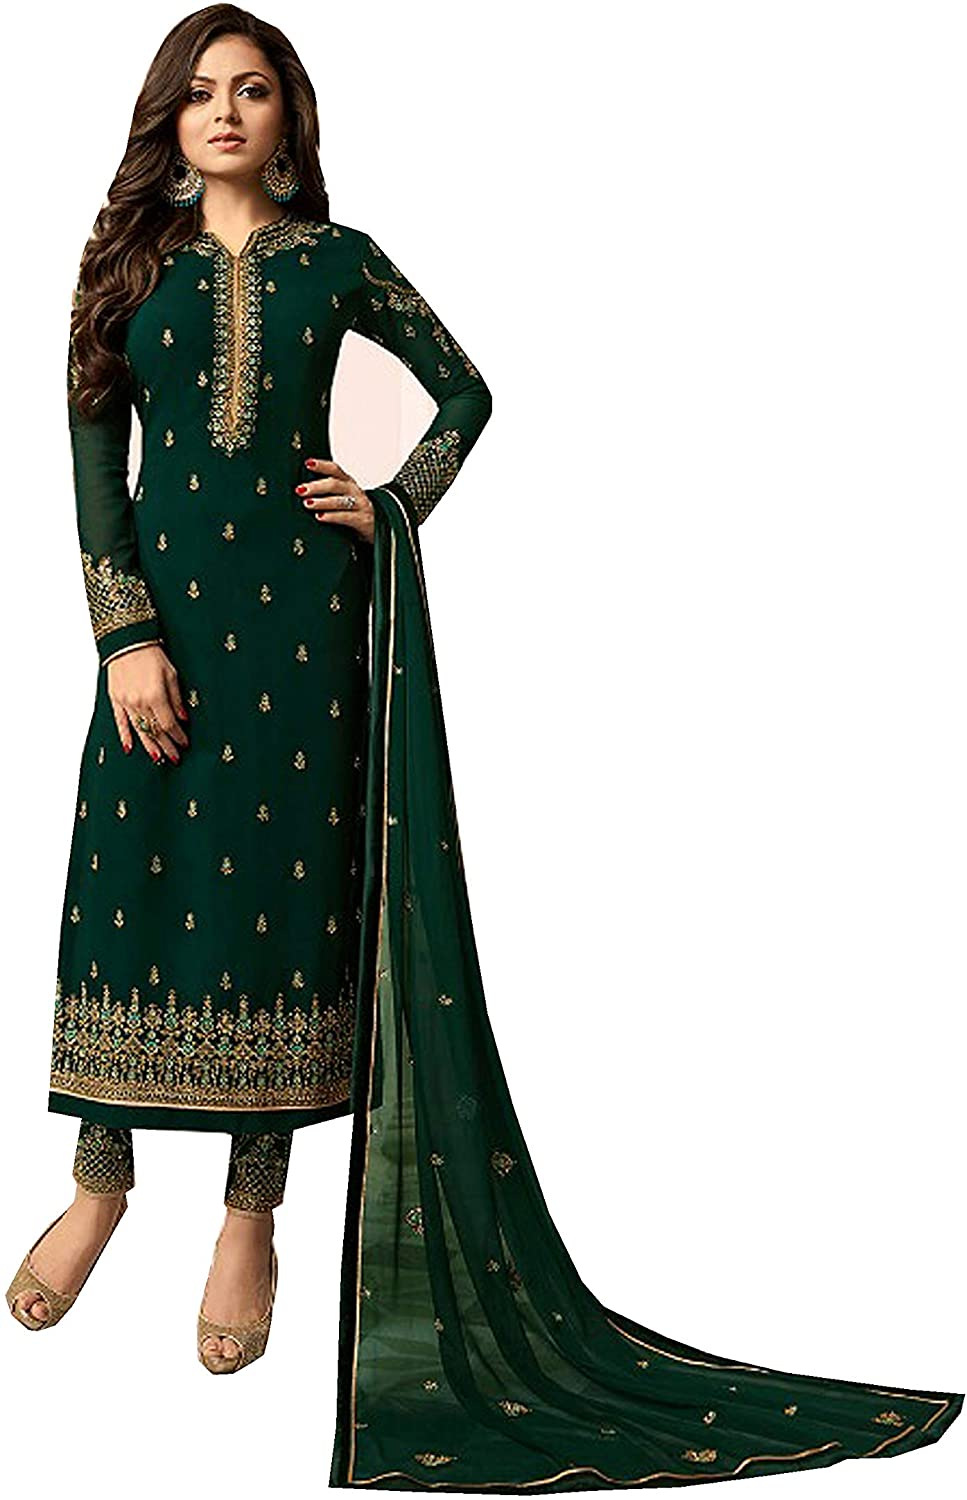 Delisa Indian/Pakistani Fashion Salwar Kameez for Women 01